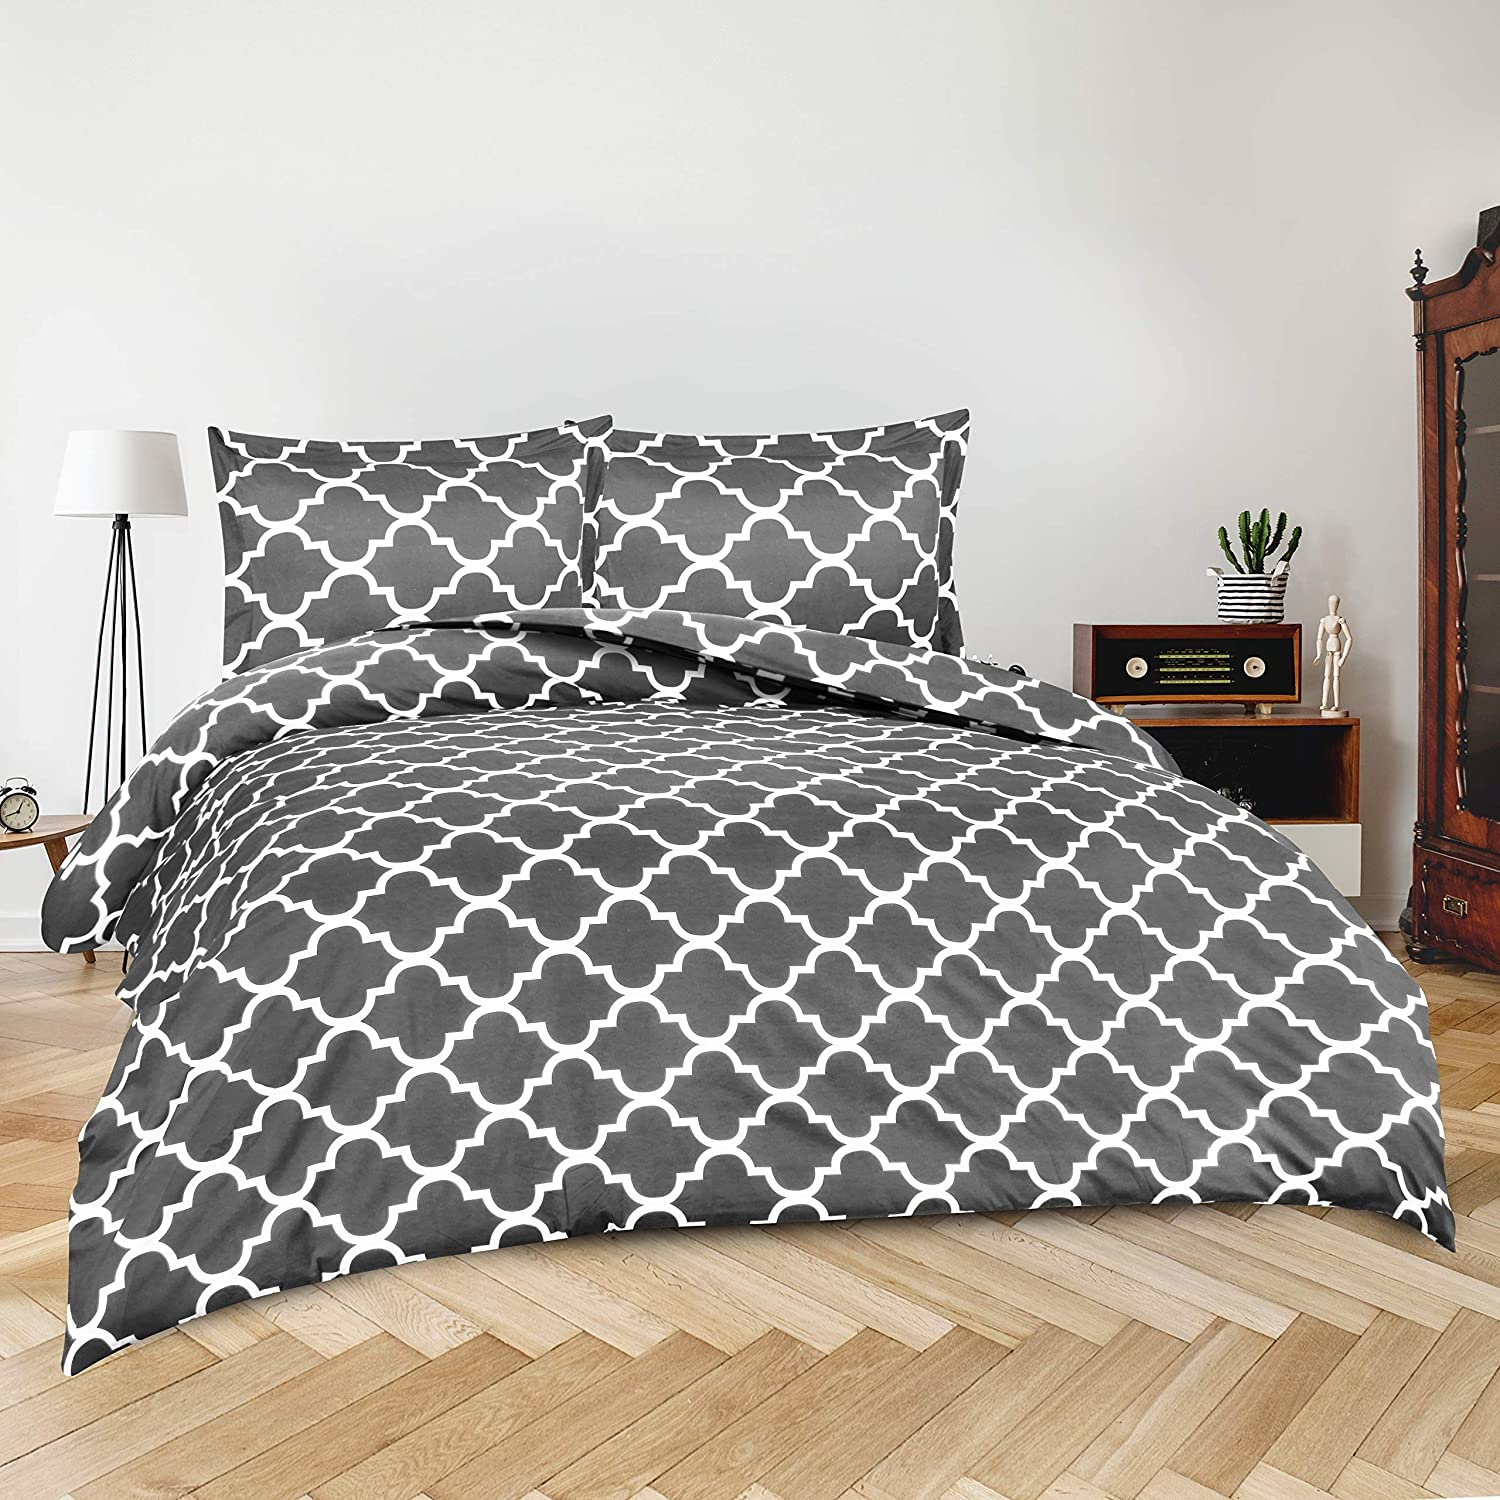 Utopia Bedding 3pc Duvet Cover with 2 Pillow Shams (King, Printed Grey)